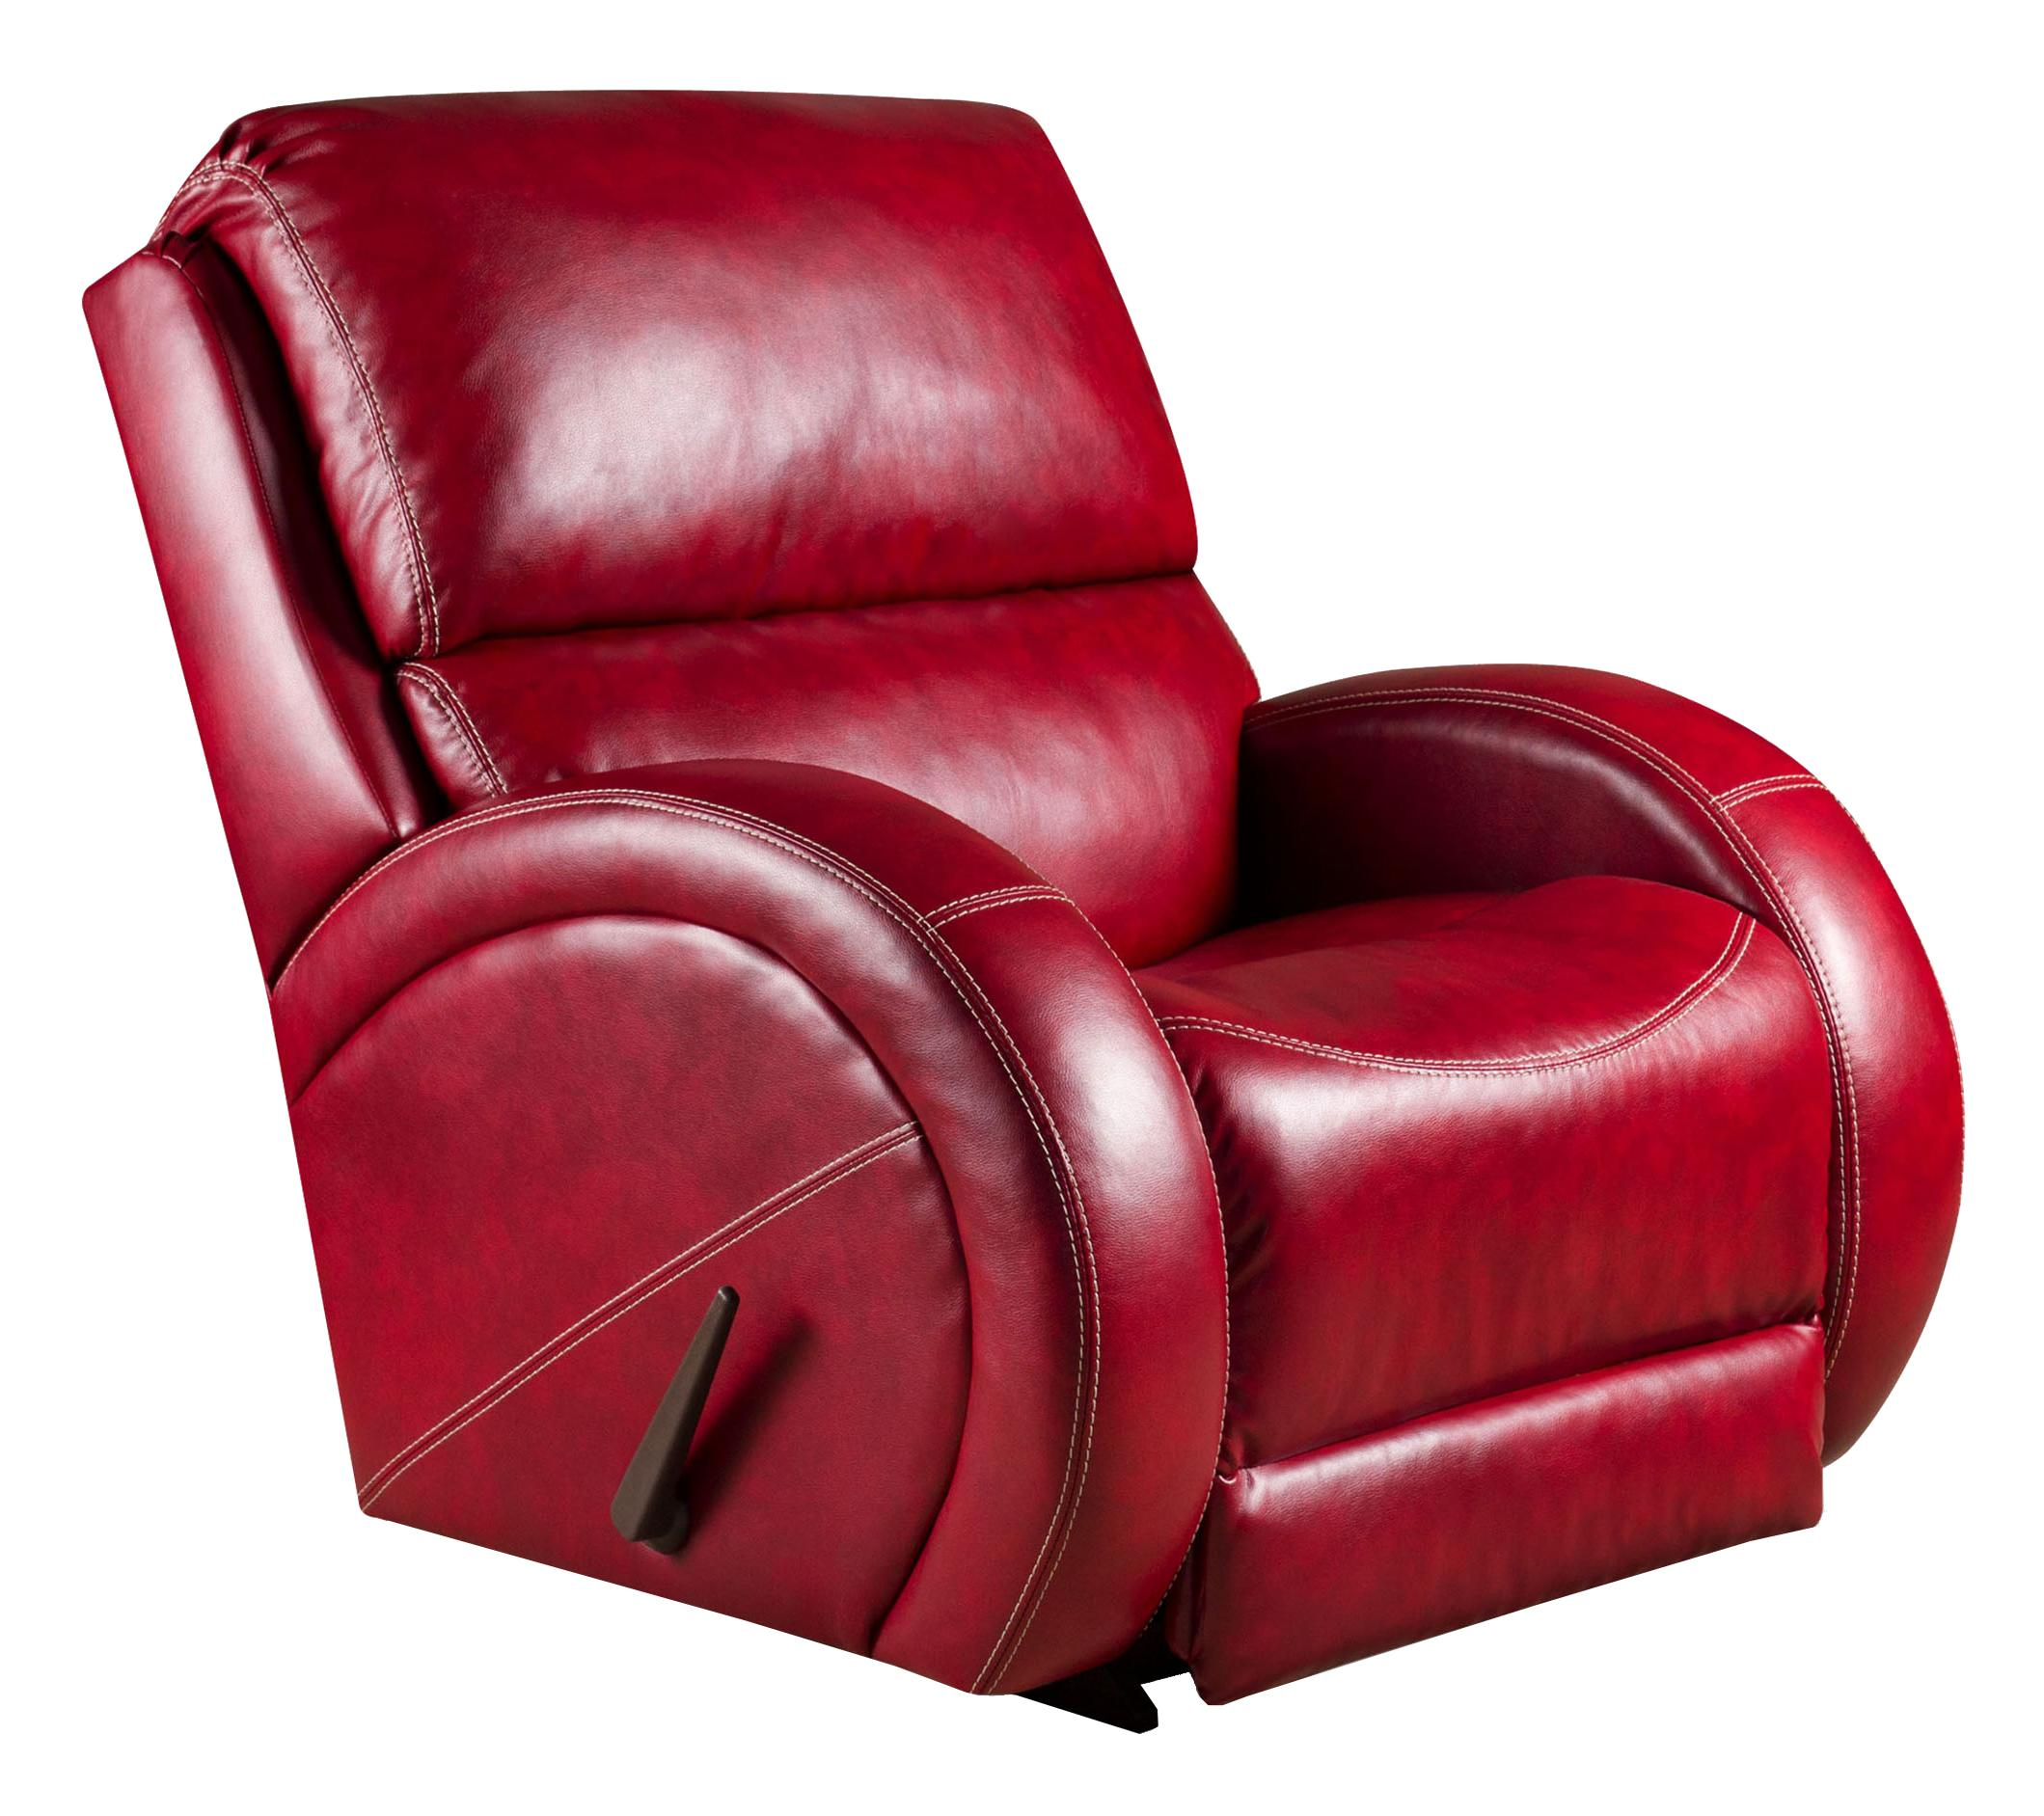 American furniture recliners rocker recliner with contemporary style van hill furniture - Stylish rocker recliner ...